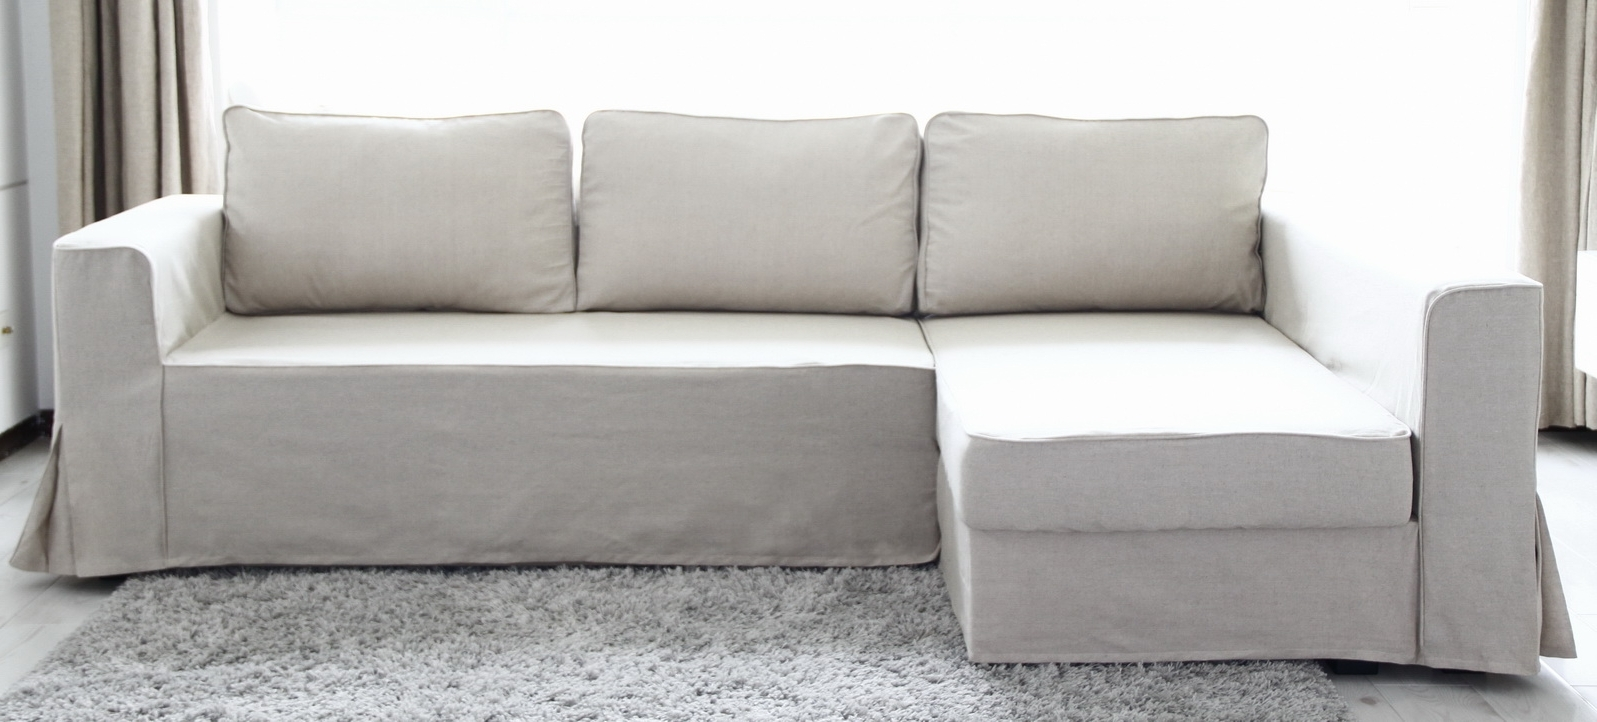 Manstad Sofas Intended For Most Up To Date Loose Fit Linen Manstad Sofa Slipcovers Now Available (View 12 of 15)